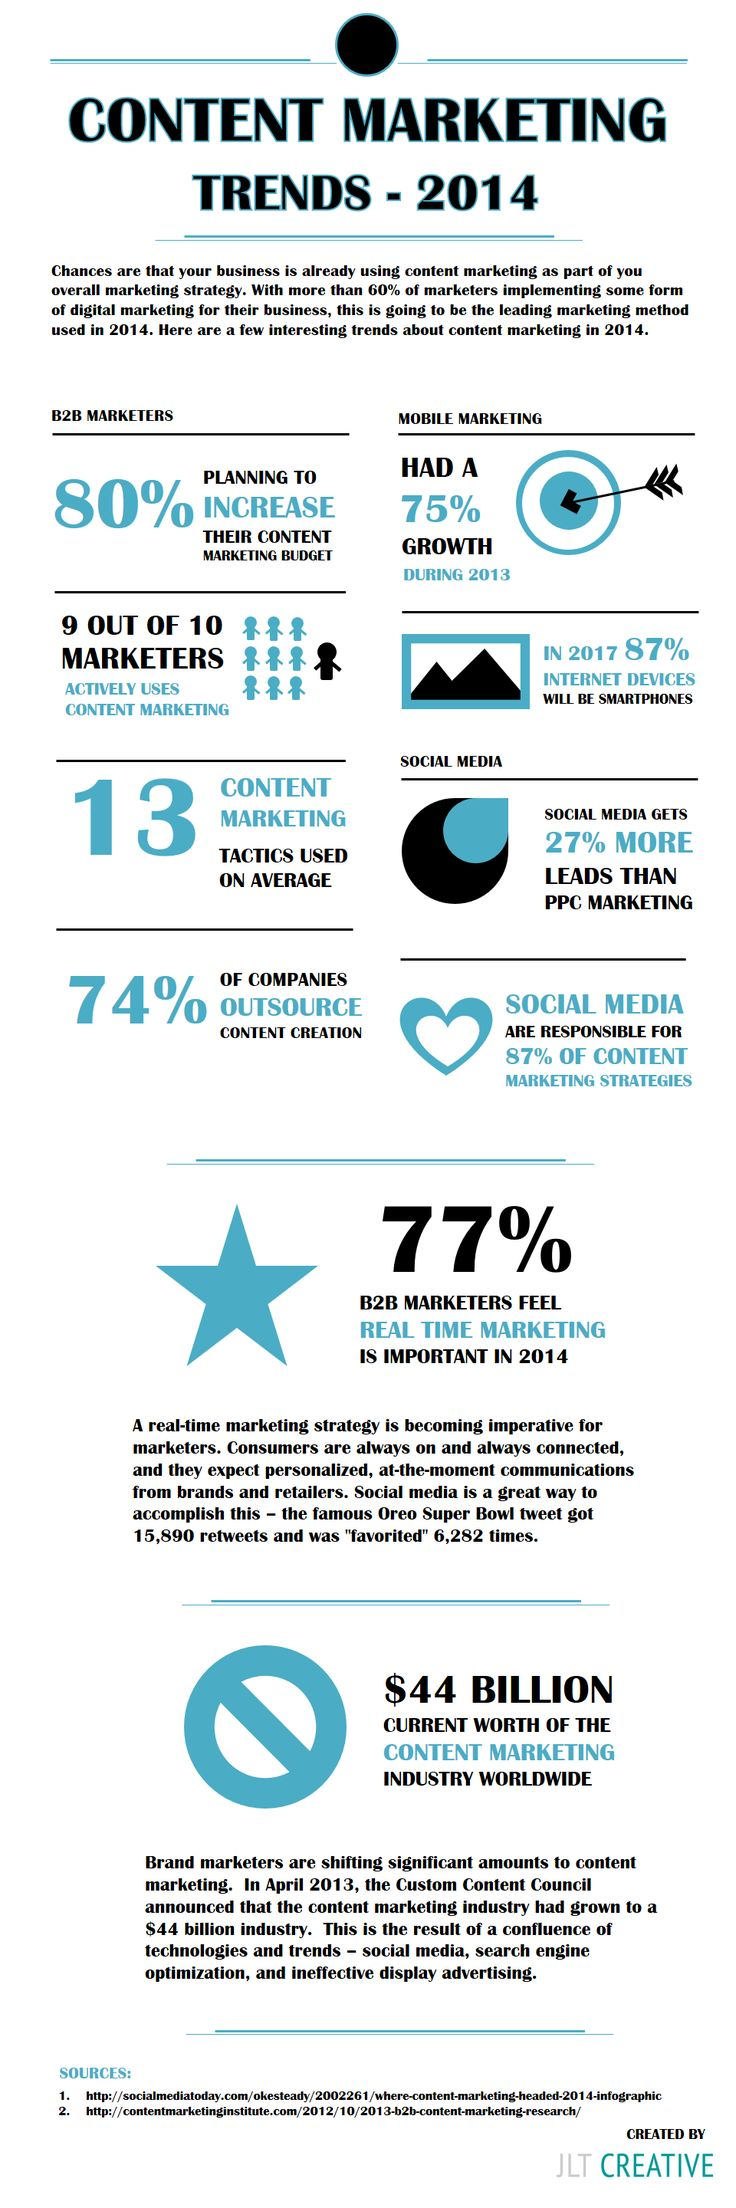 Content Marketing Trends 2014